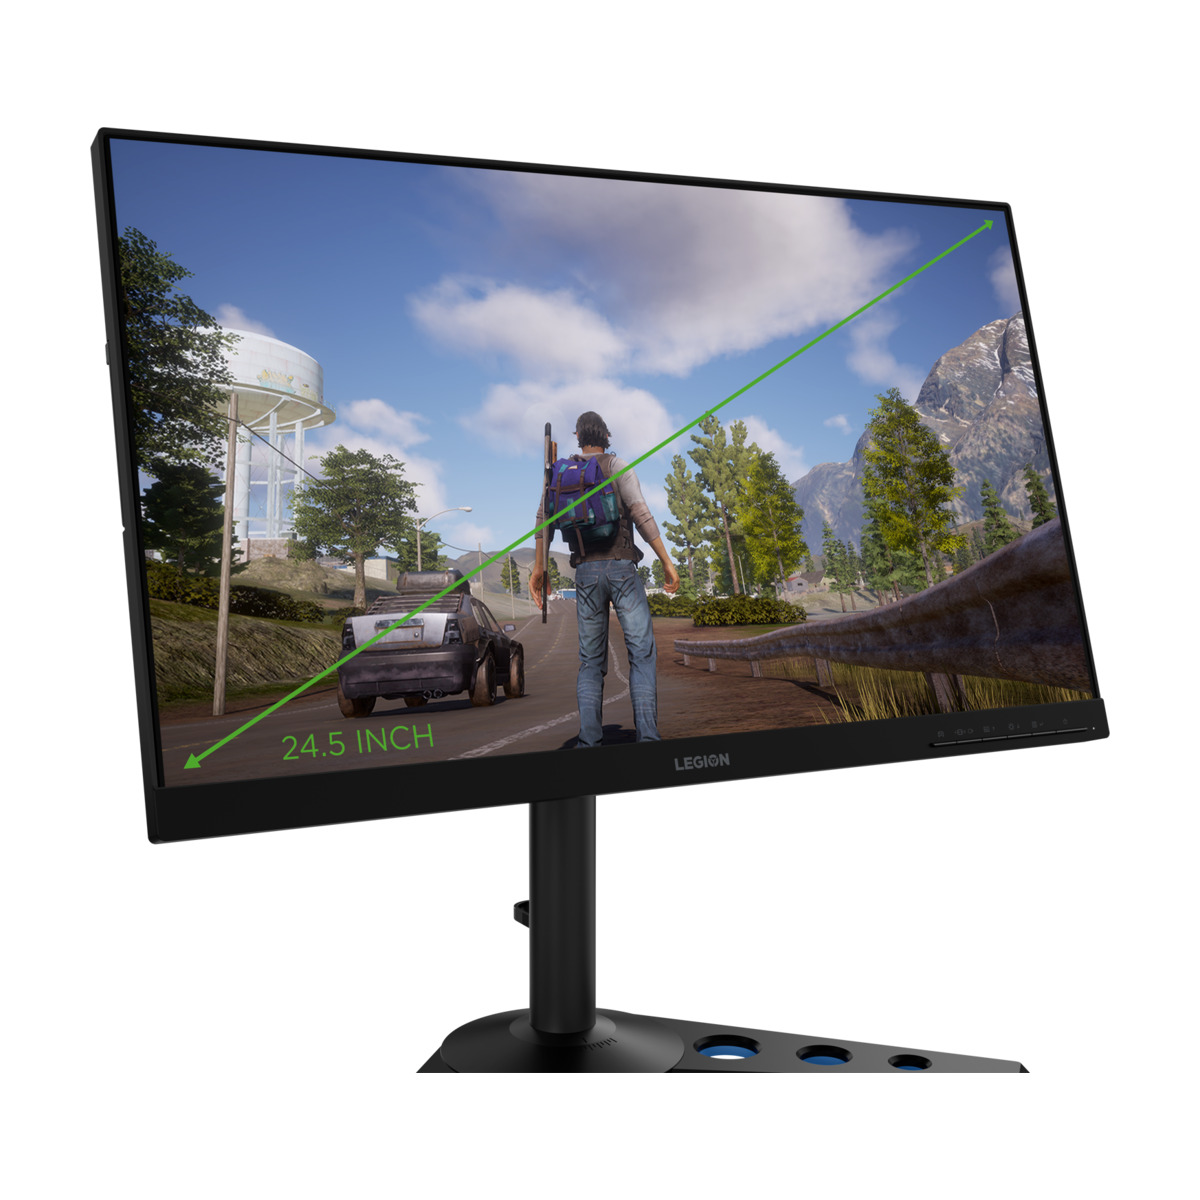 LENOVO LEGION Y25 25 24,5 FULL HD GAMINGSKJERM Power.no